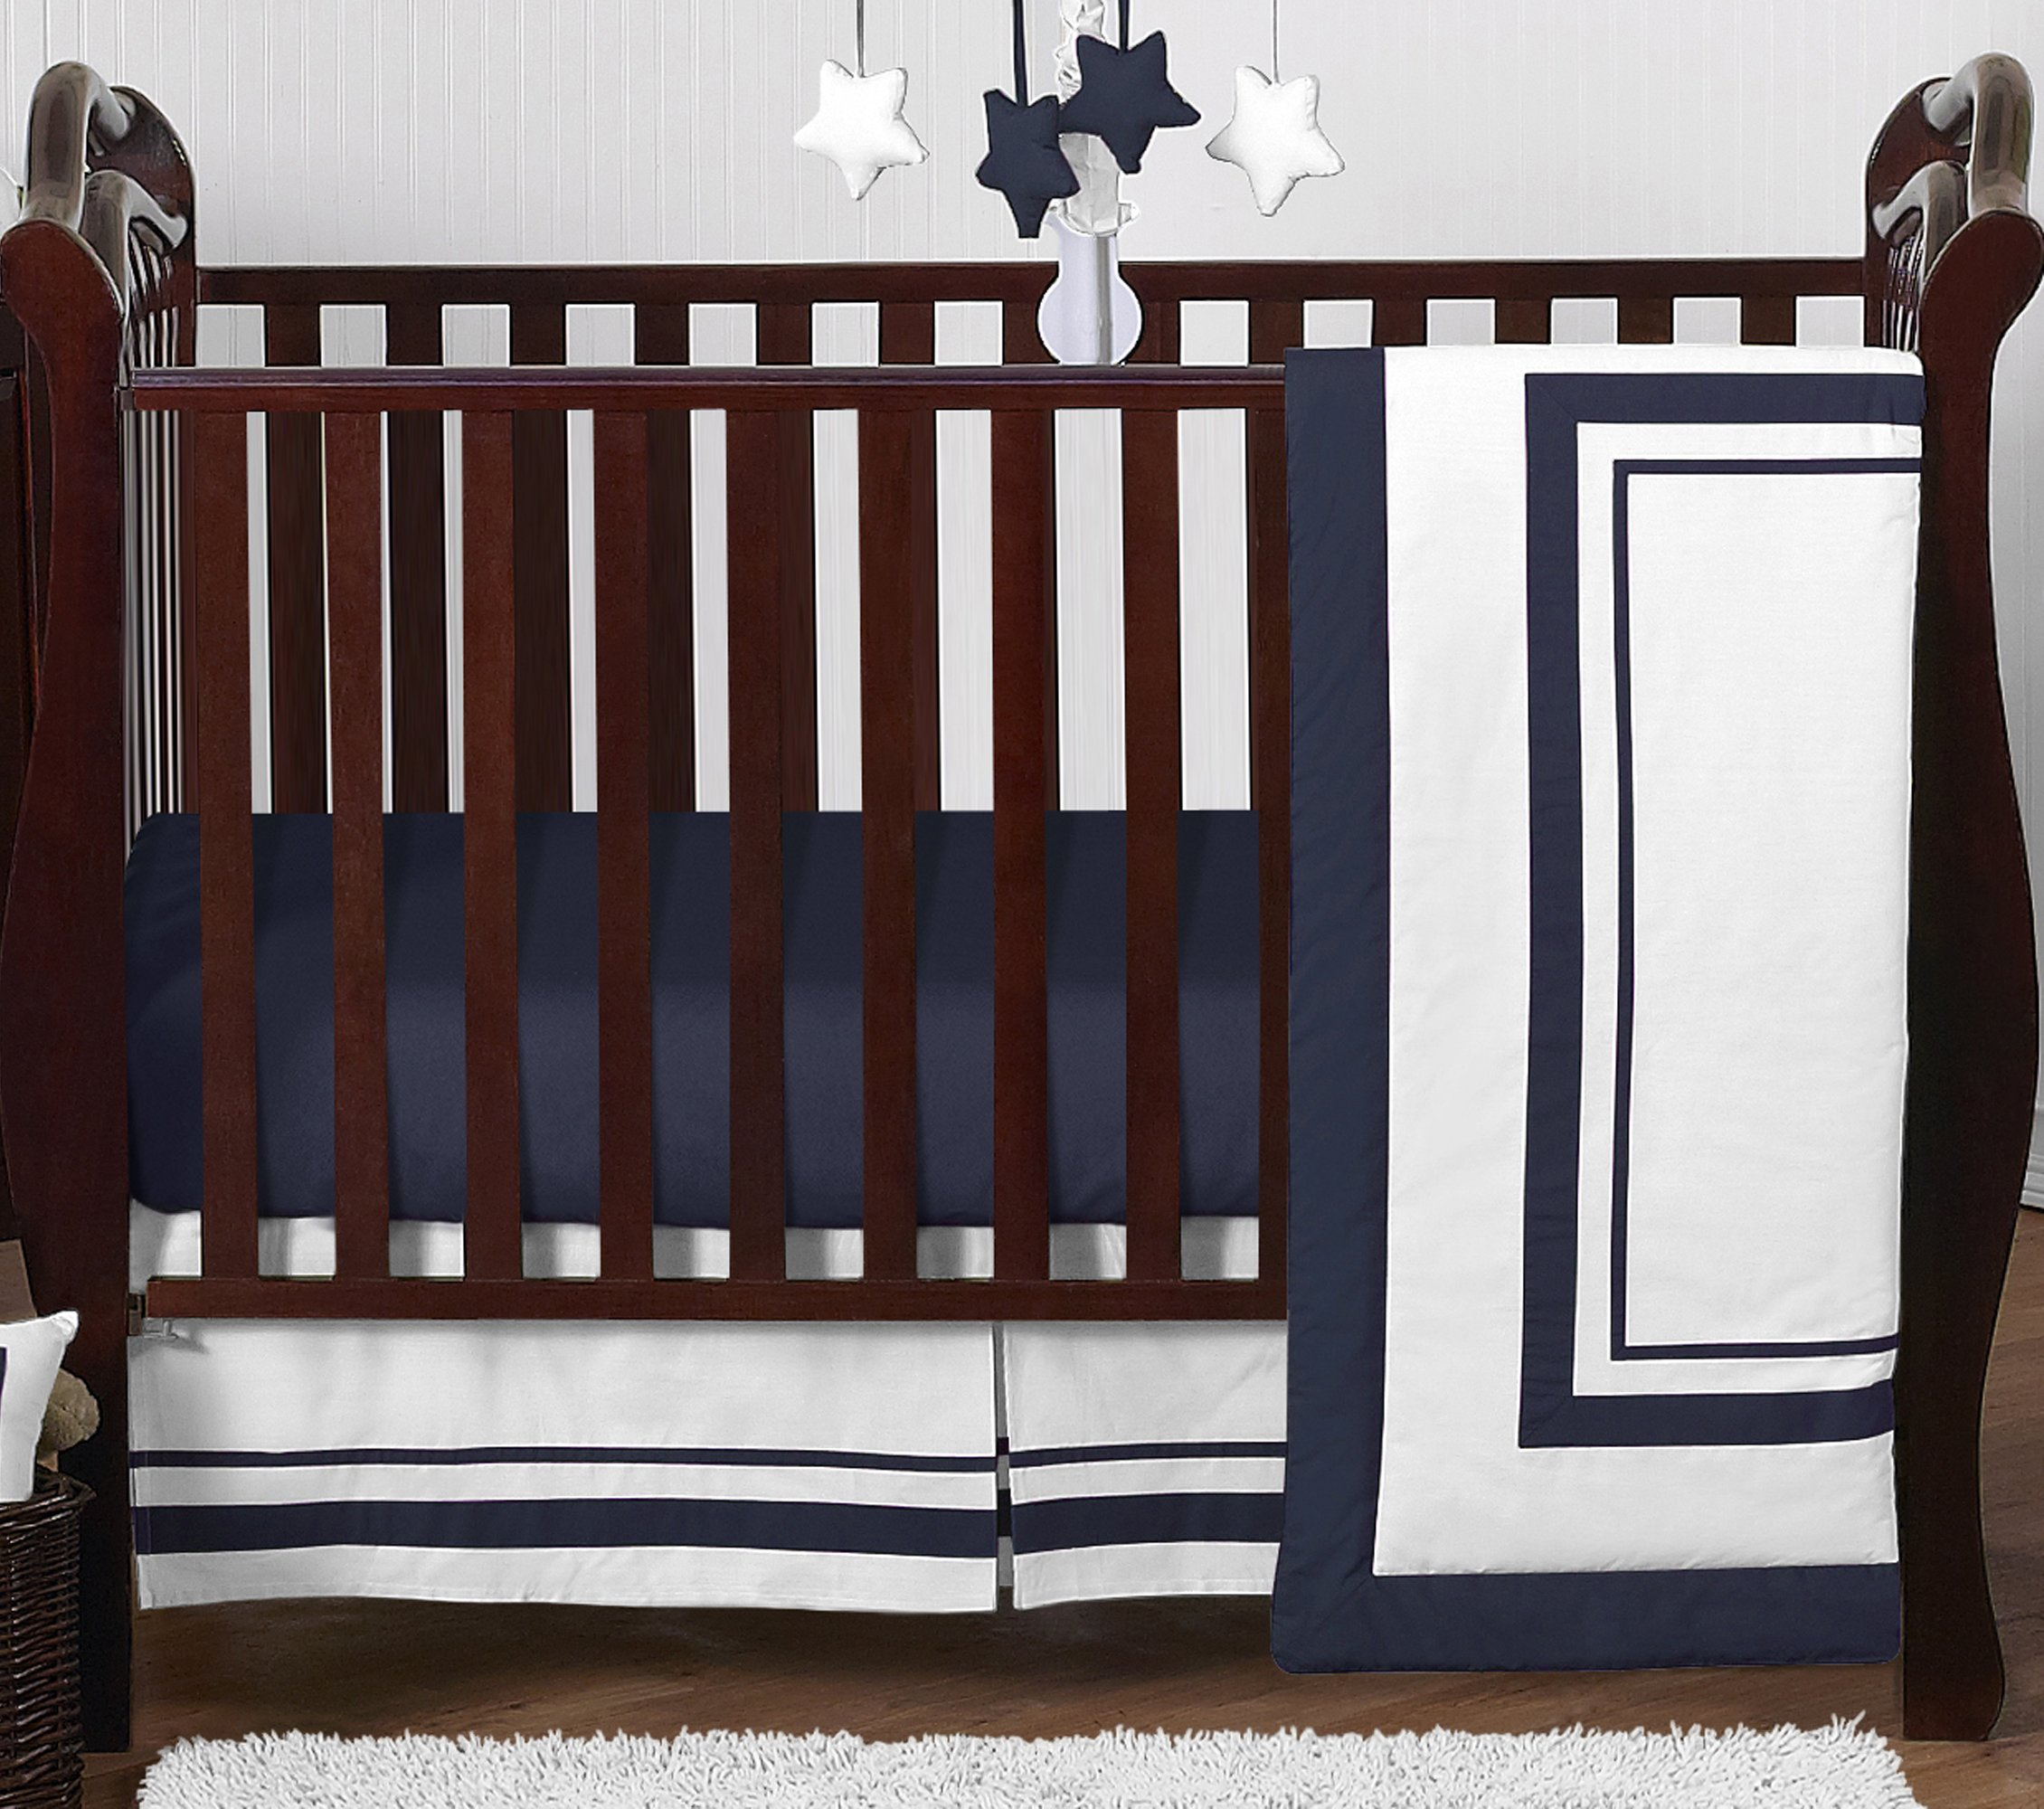 Contemporary White and Navy Modern Hotel Baby Boy Girl Unisex Bedding 4 Piece Crib Set Without Bumper